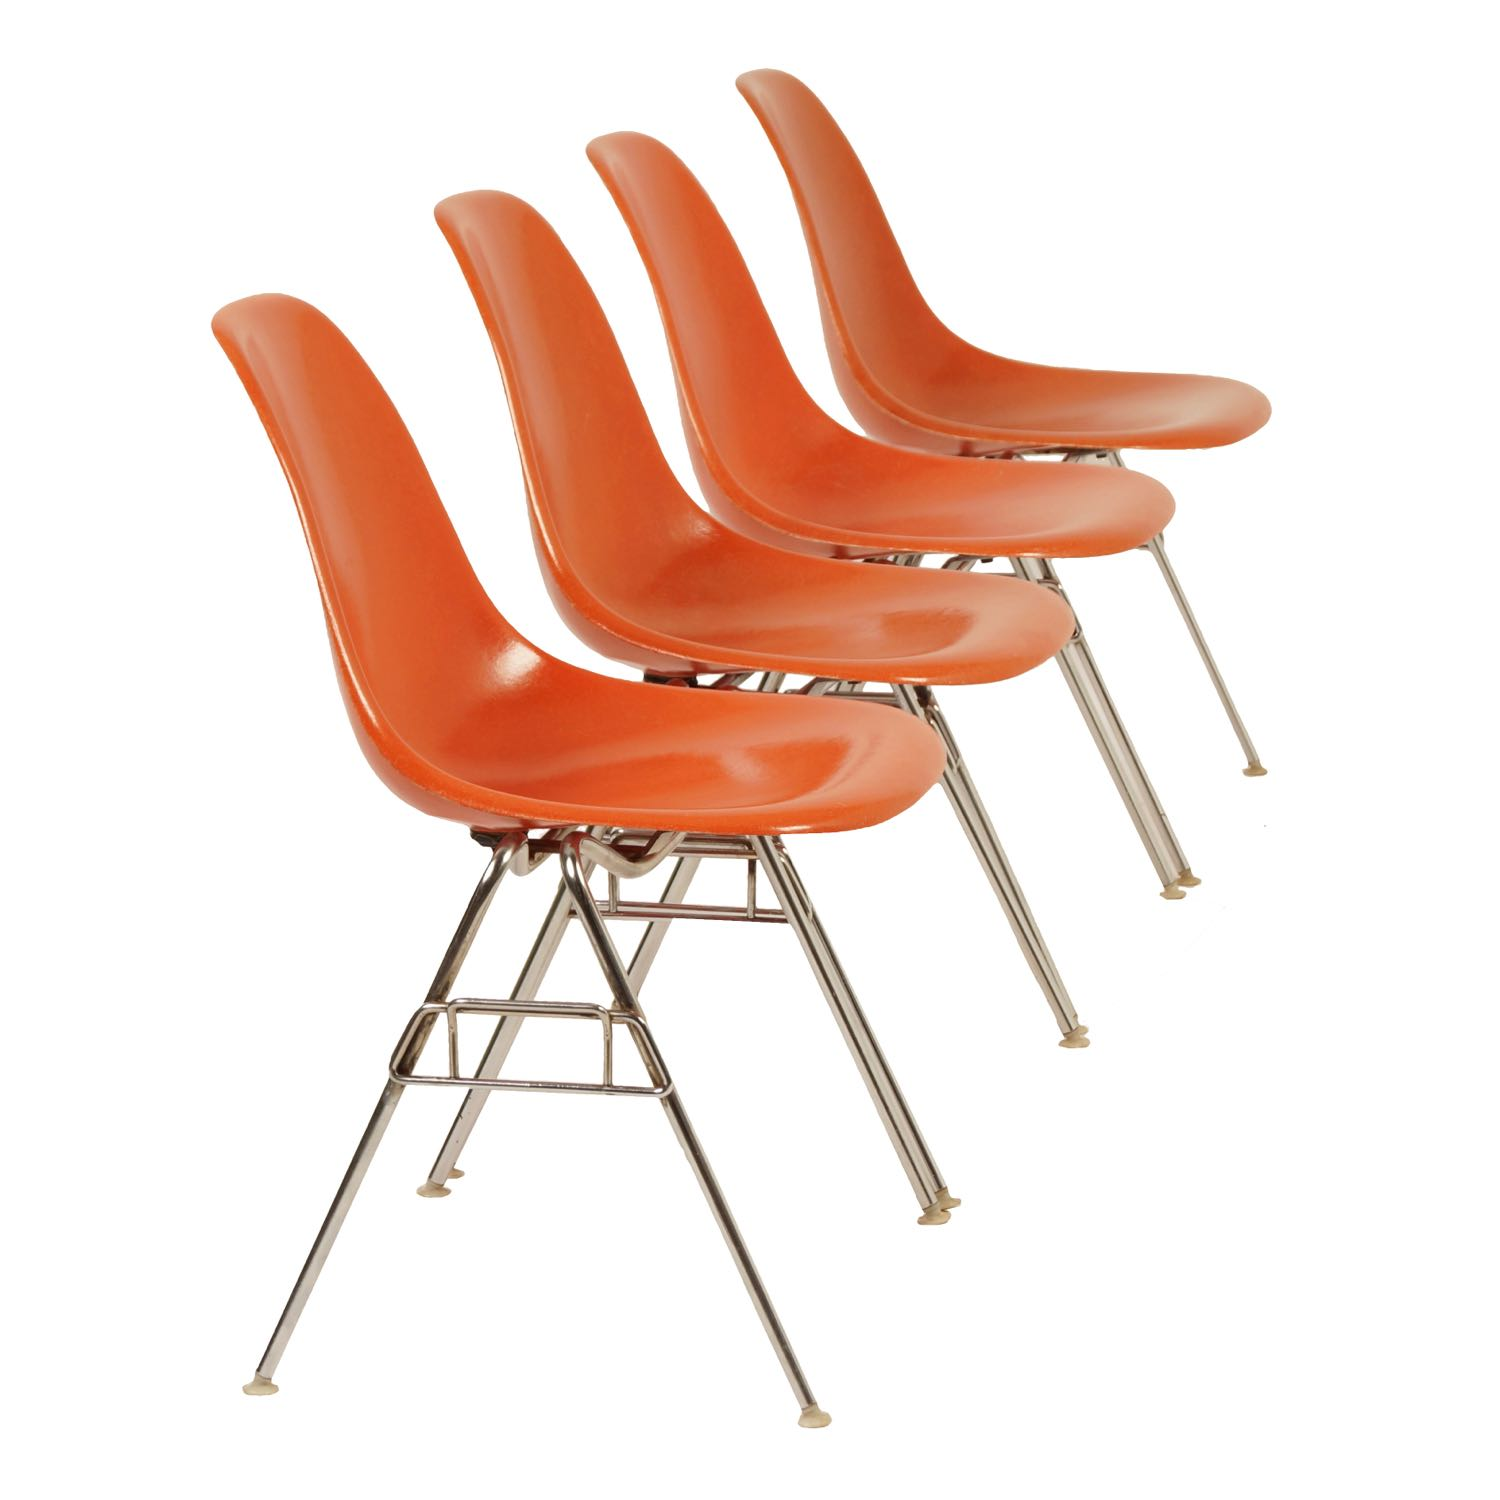 Original Eames DSS Chairs for Herman Miller, 1950s – Set of 4 | Mid Century Design